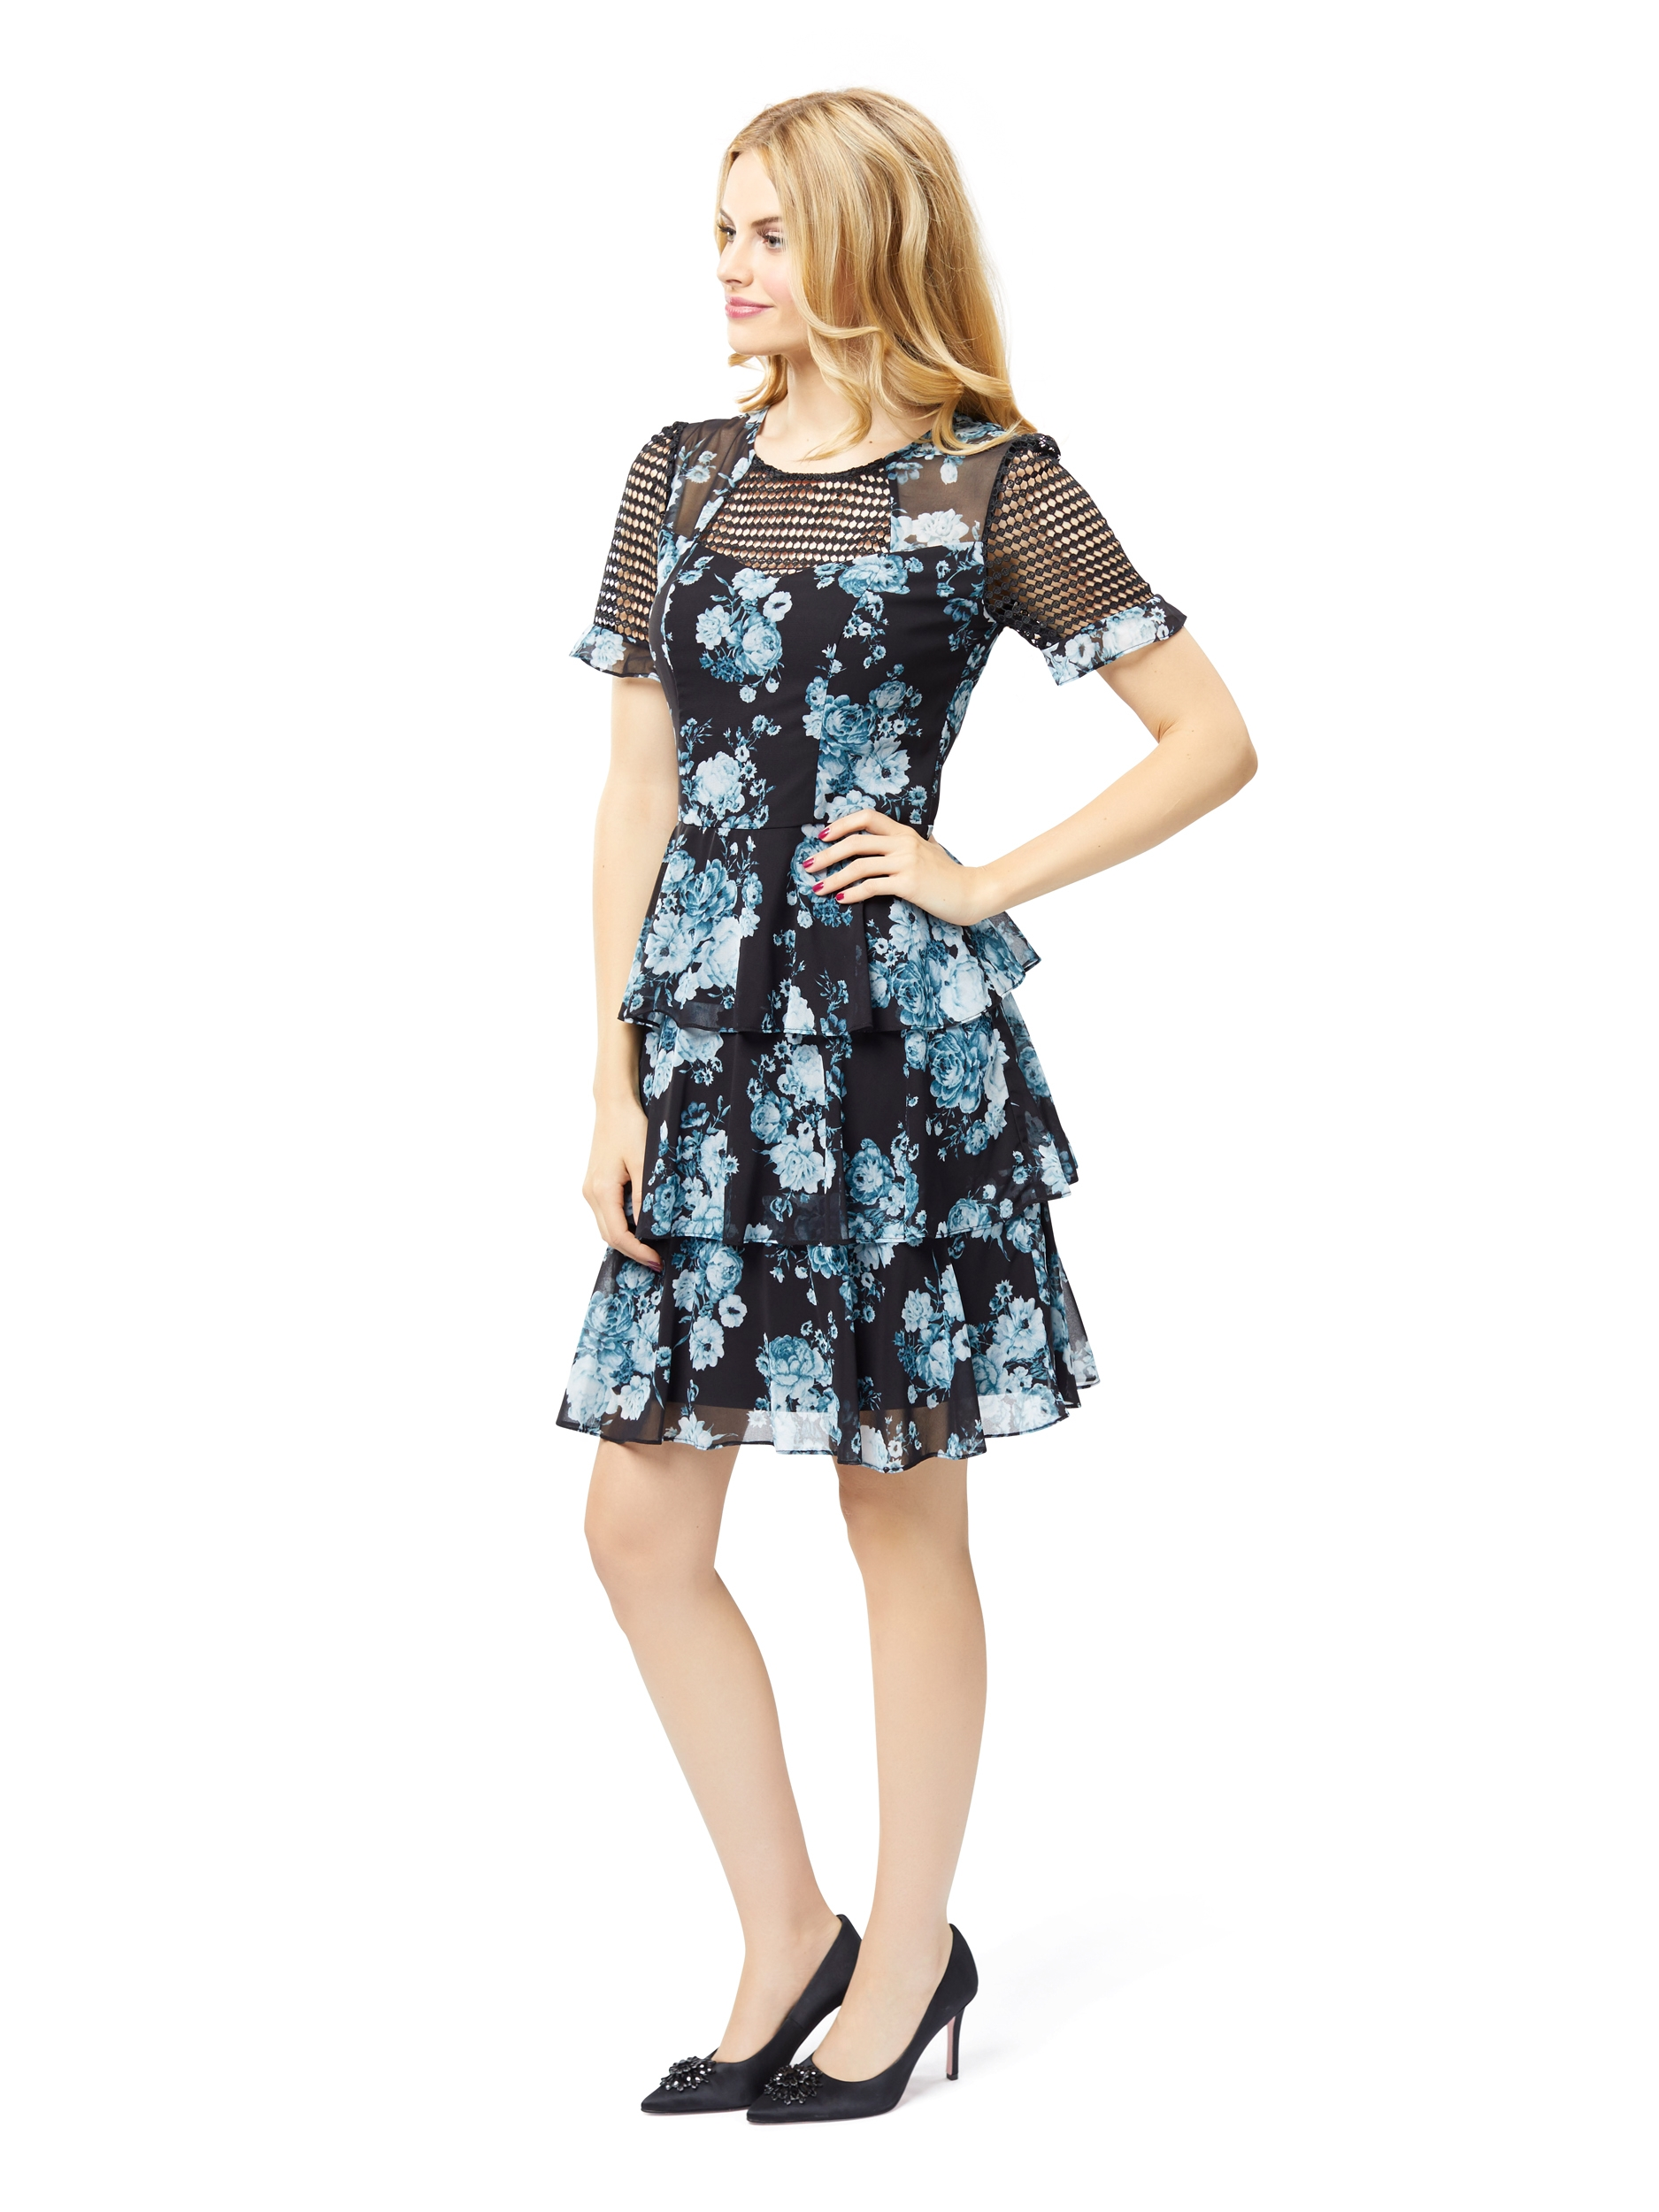 Shades Of Winter Dress  Shop Dresses Online from Review  Review Australia